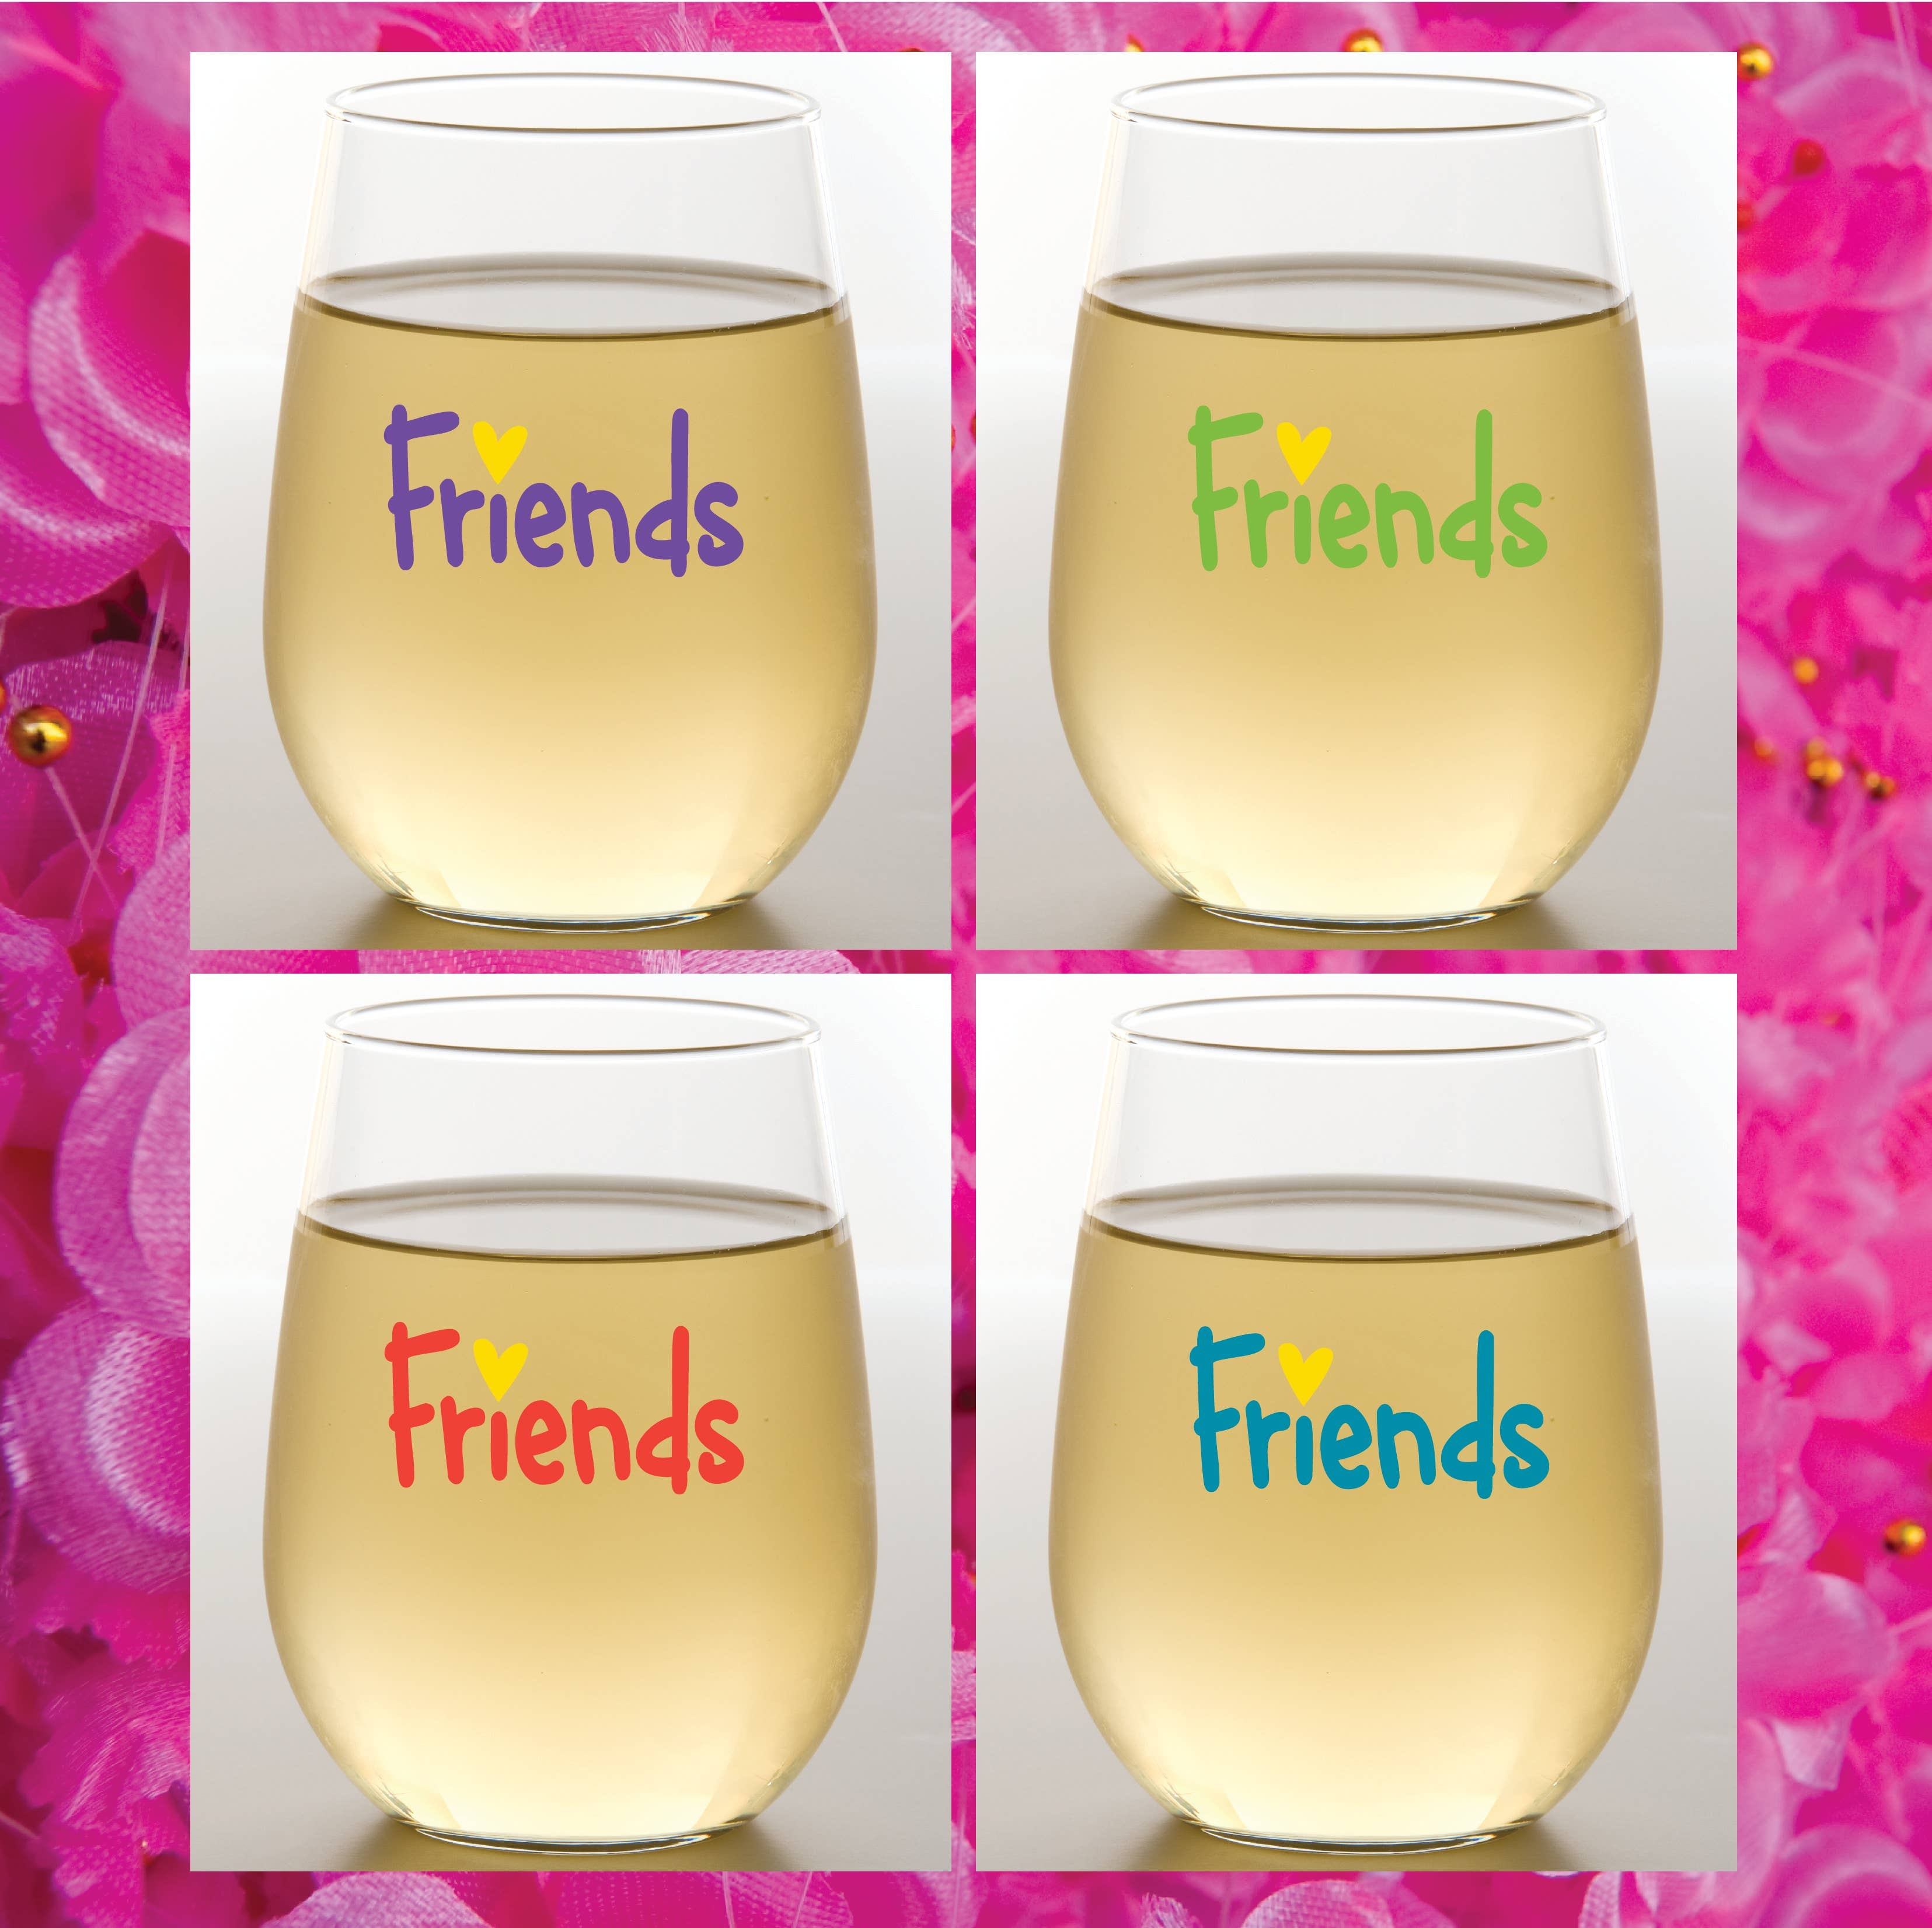 FRIENDS Shatterproof Wine Glasses